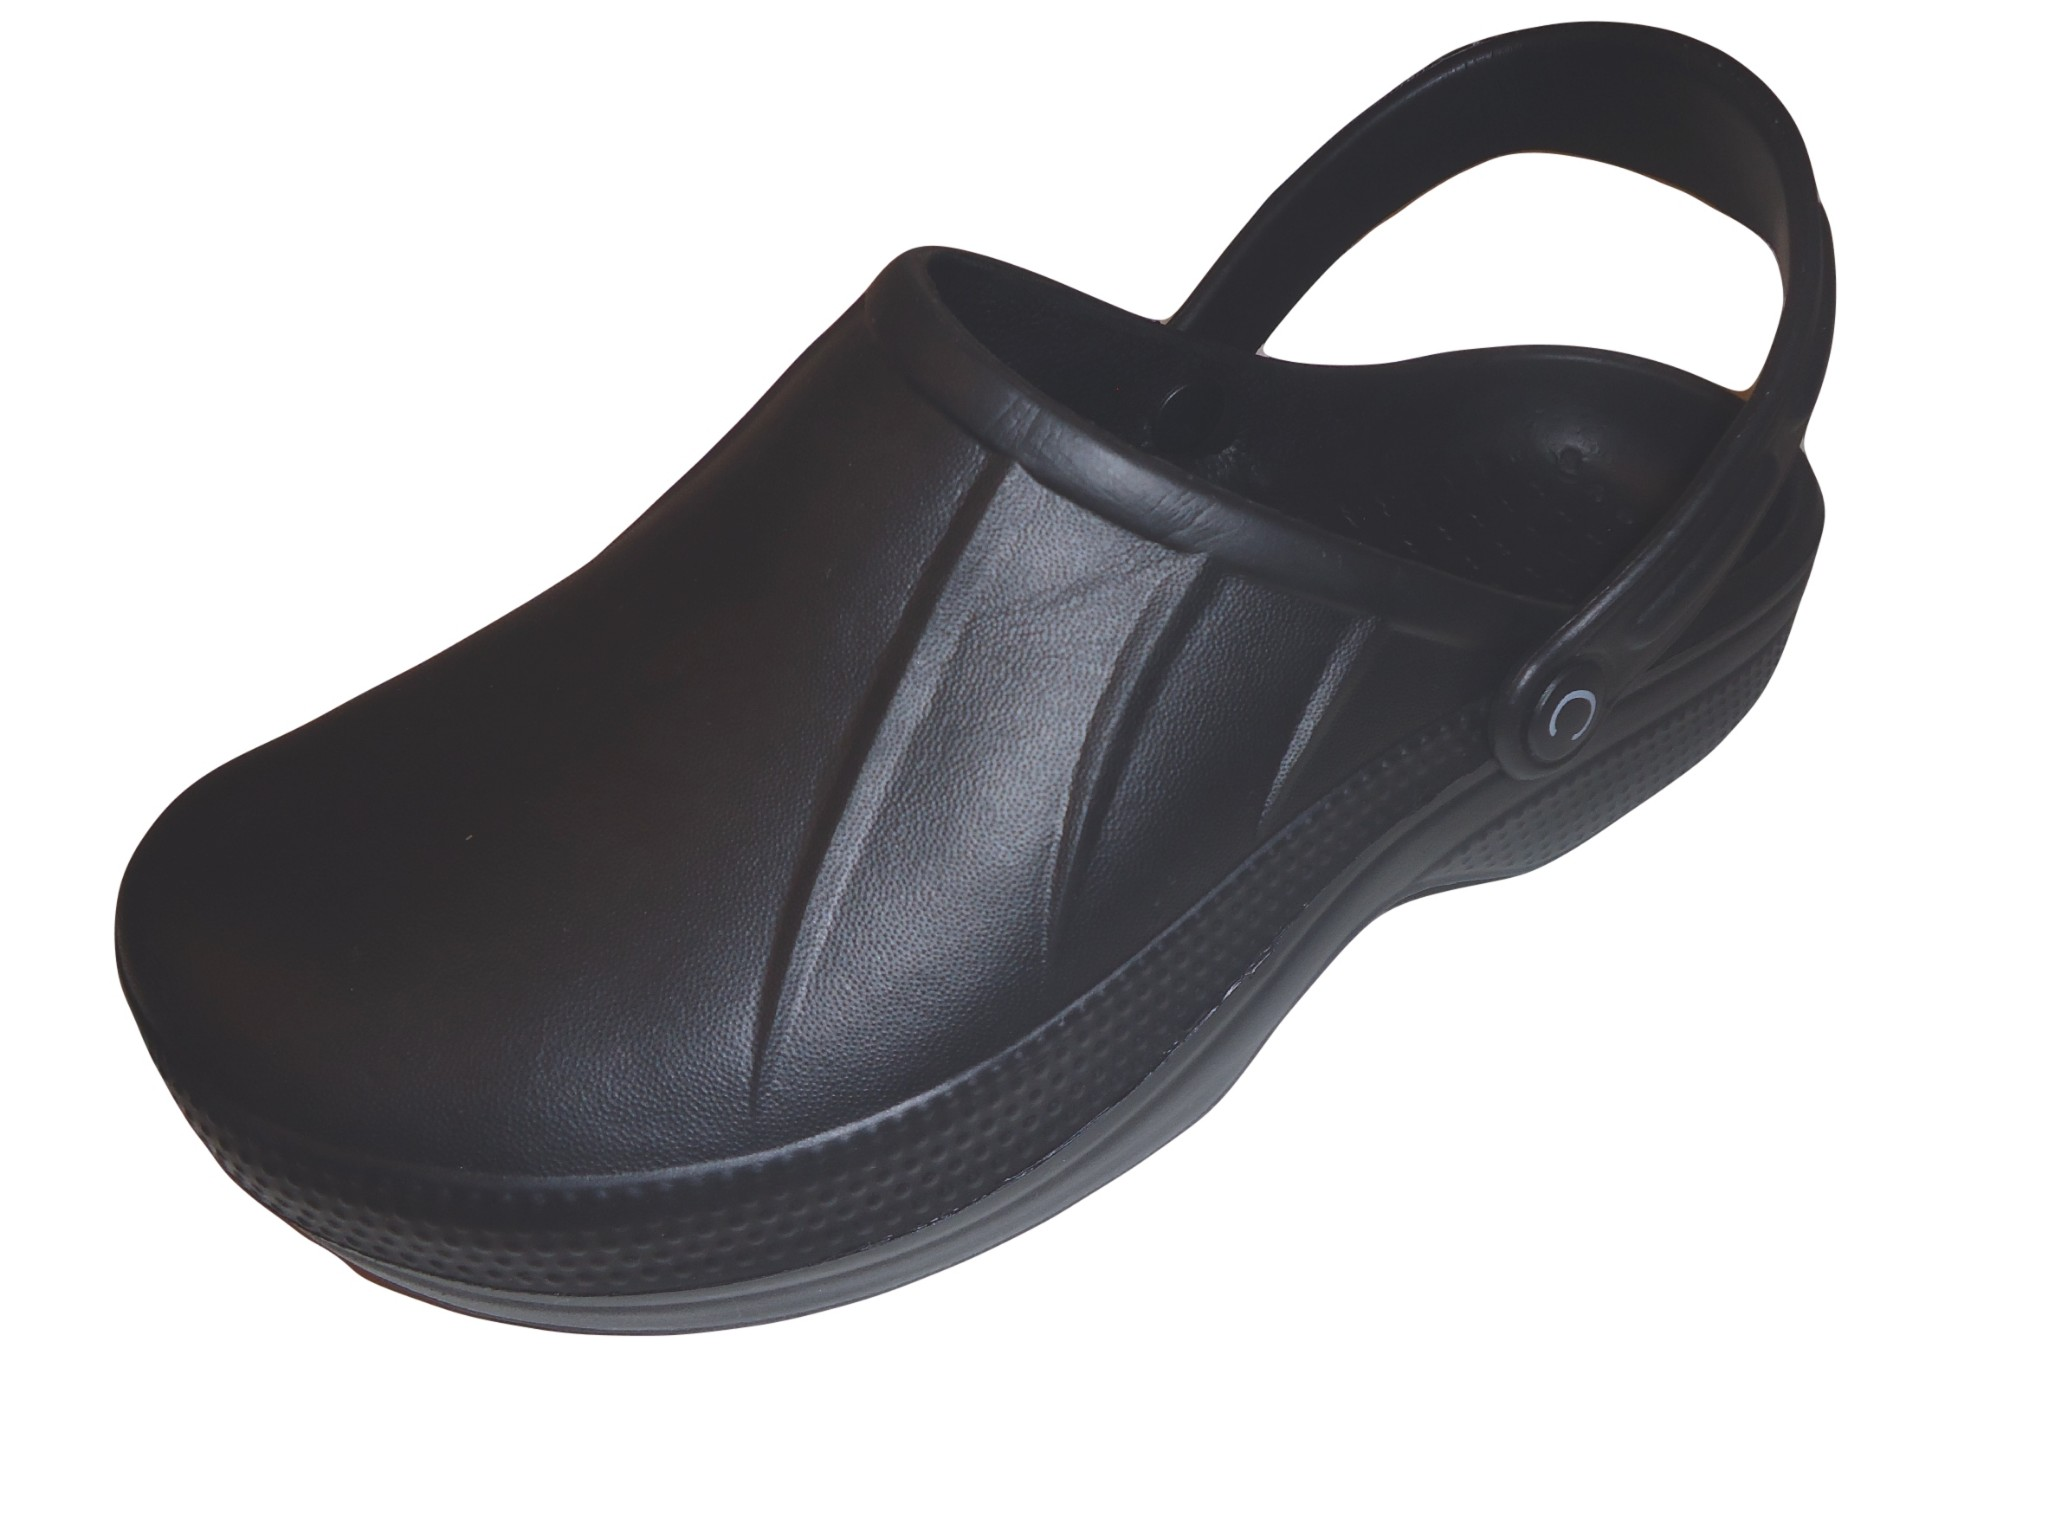 e40c4c56743a08 Cloggis Staff Clogs Kitchen Shoes Specialist Footwear